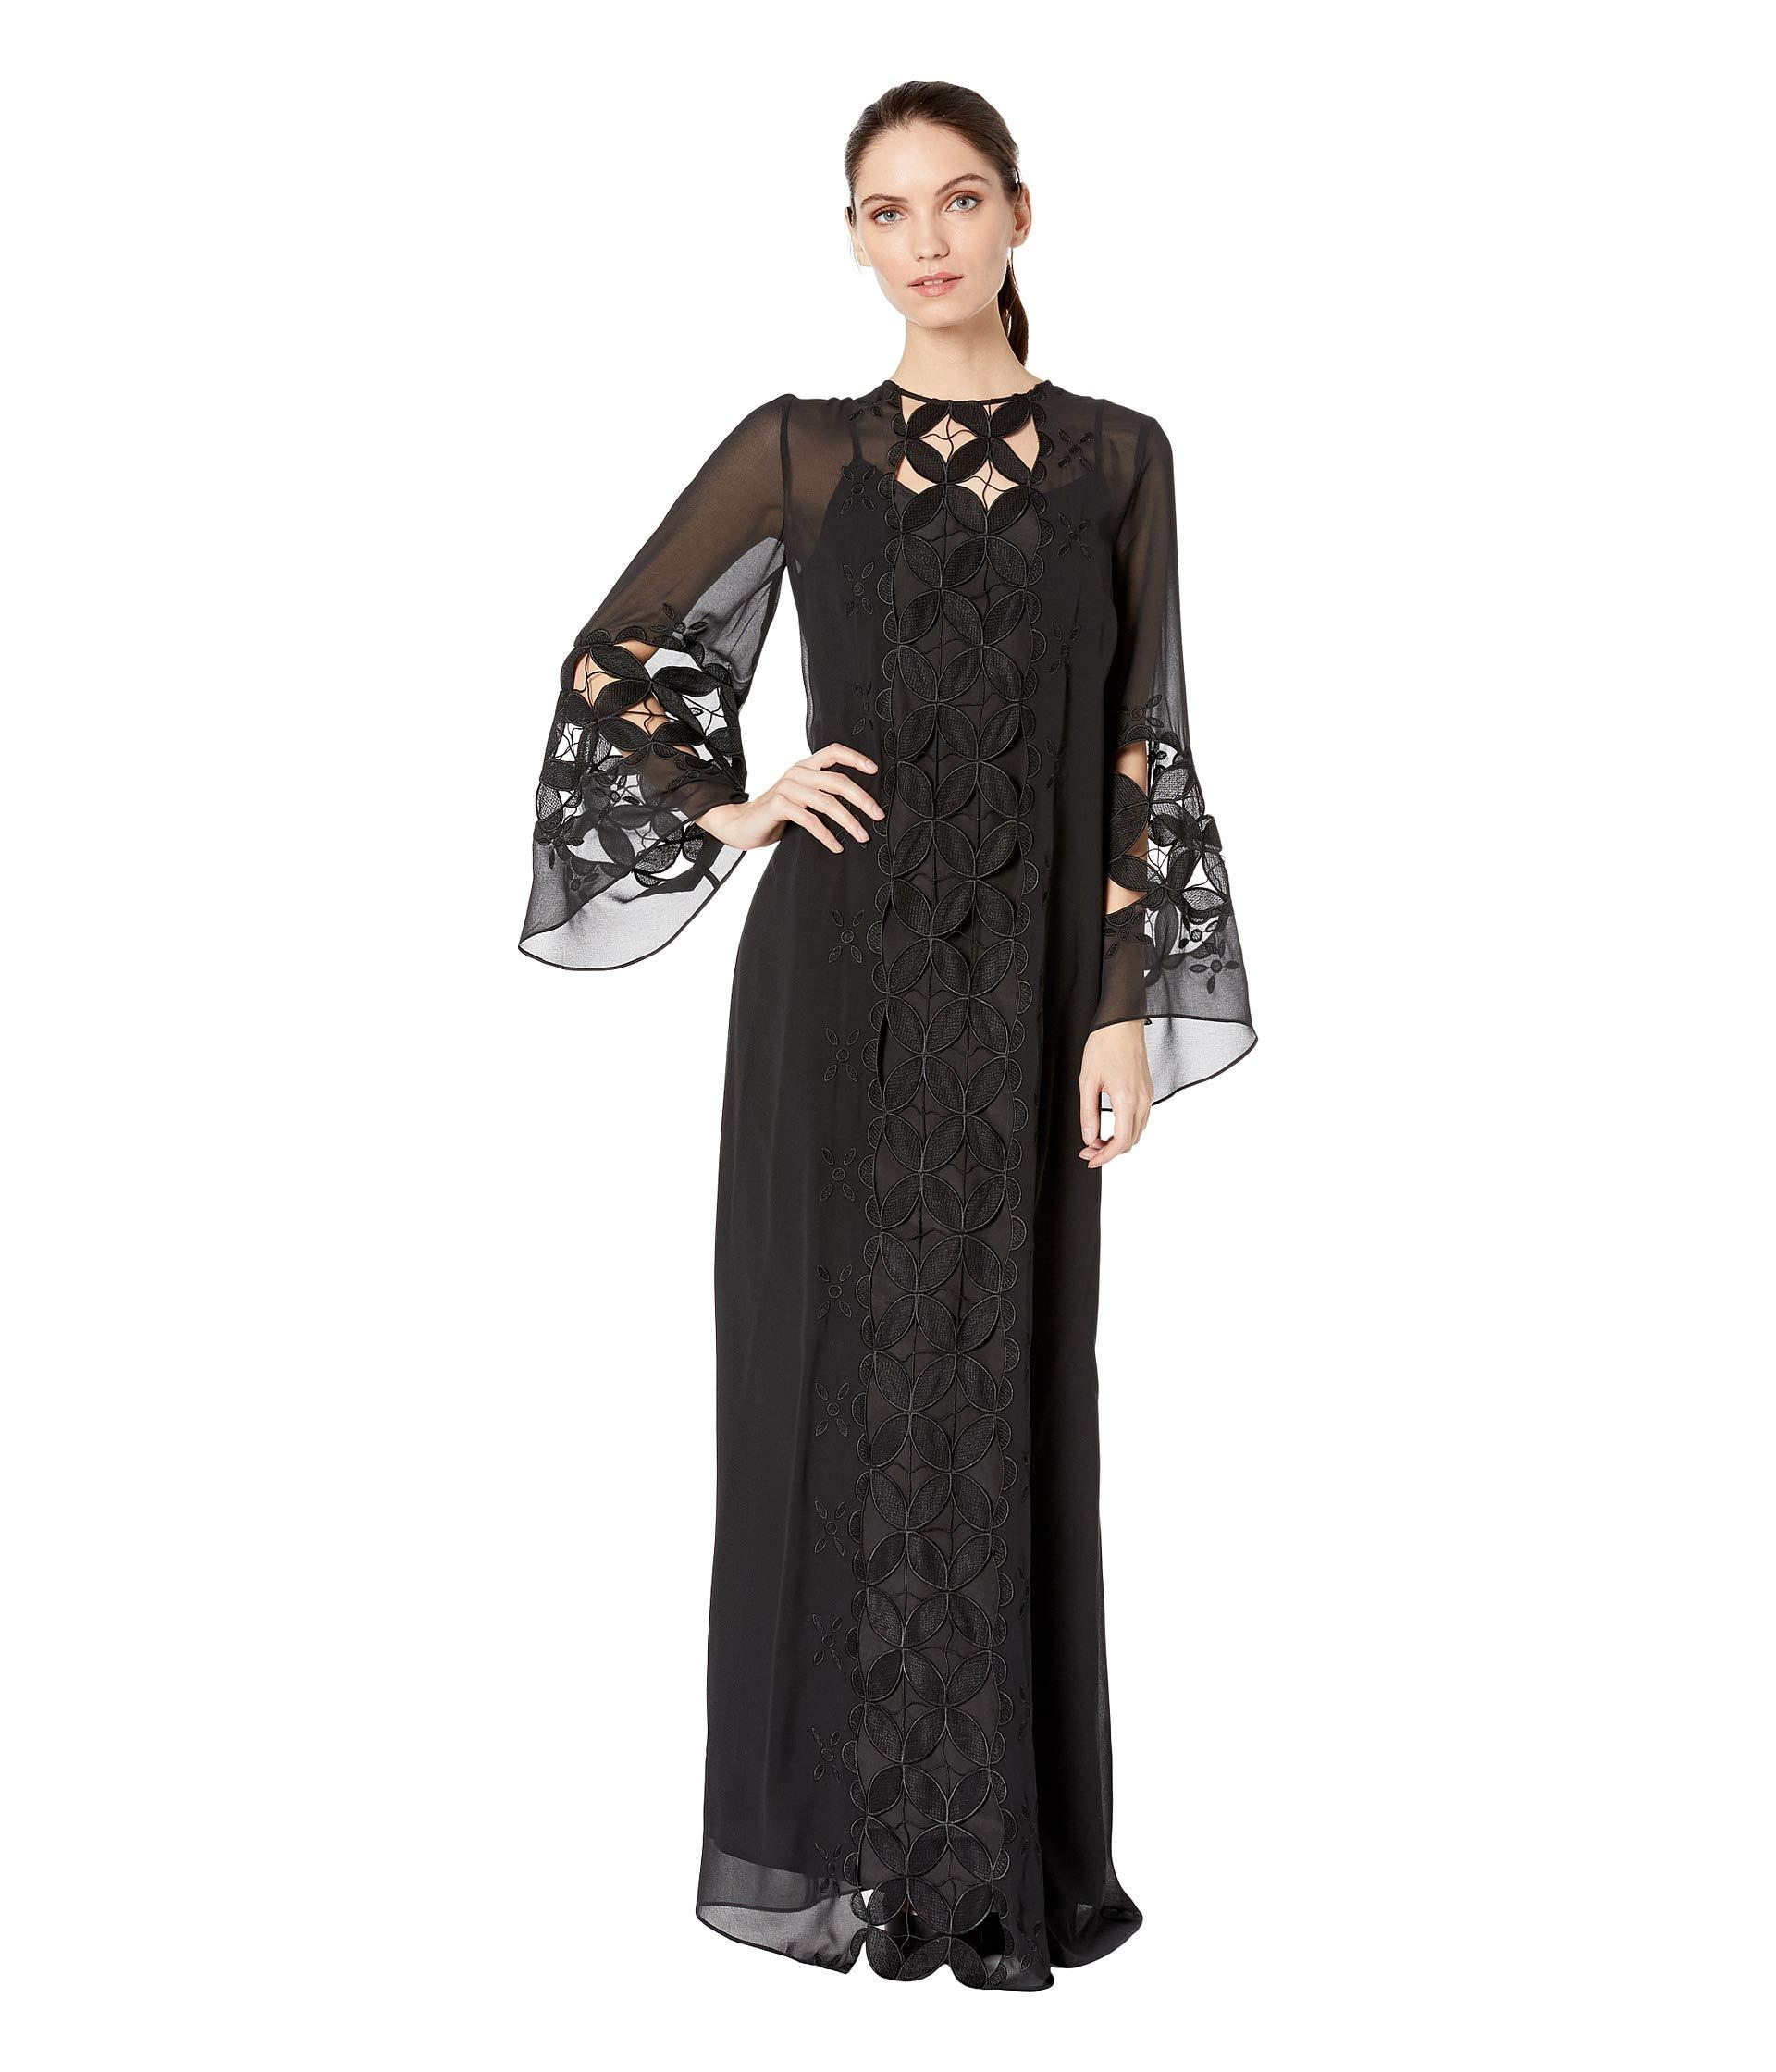 03af7f8108a07 Lyst - Juicy Couture Embroidered Lace Kaftan in Black